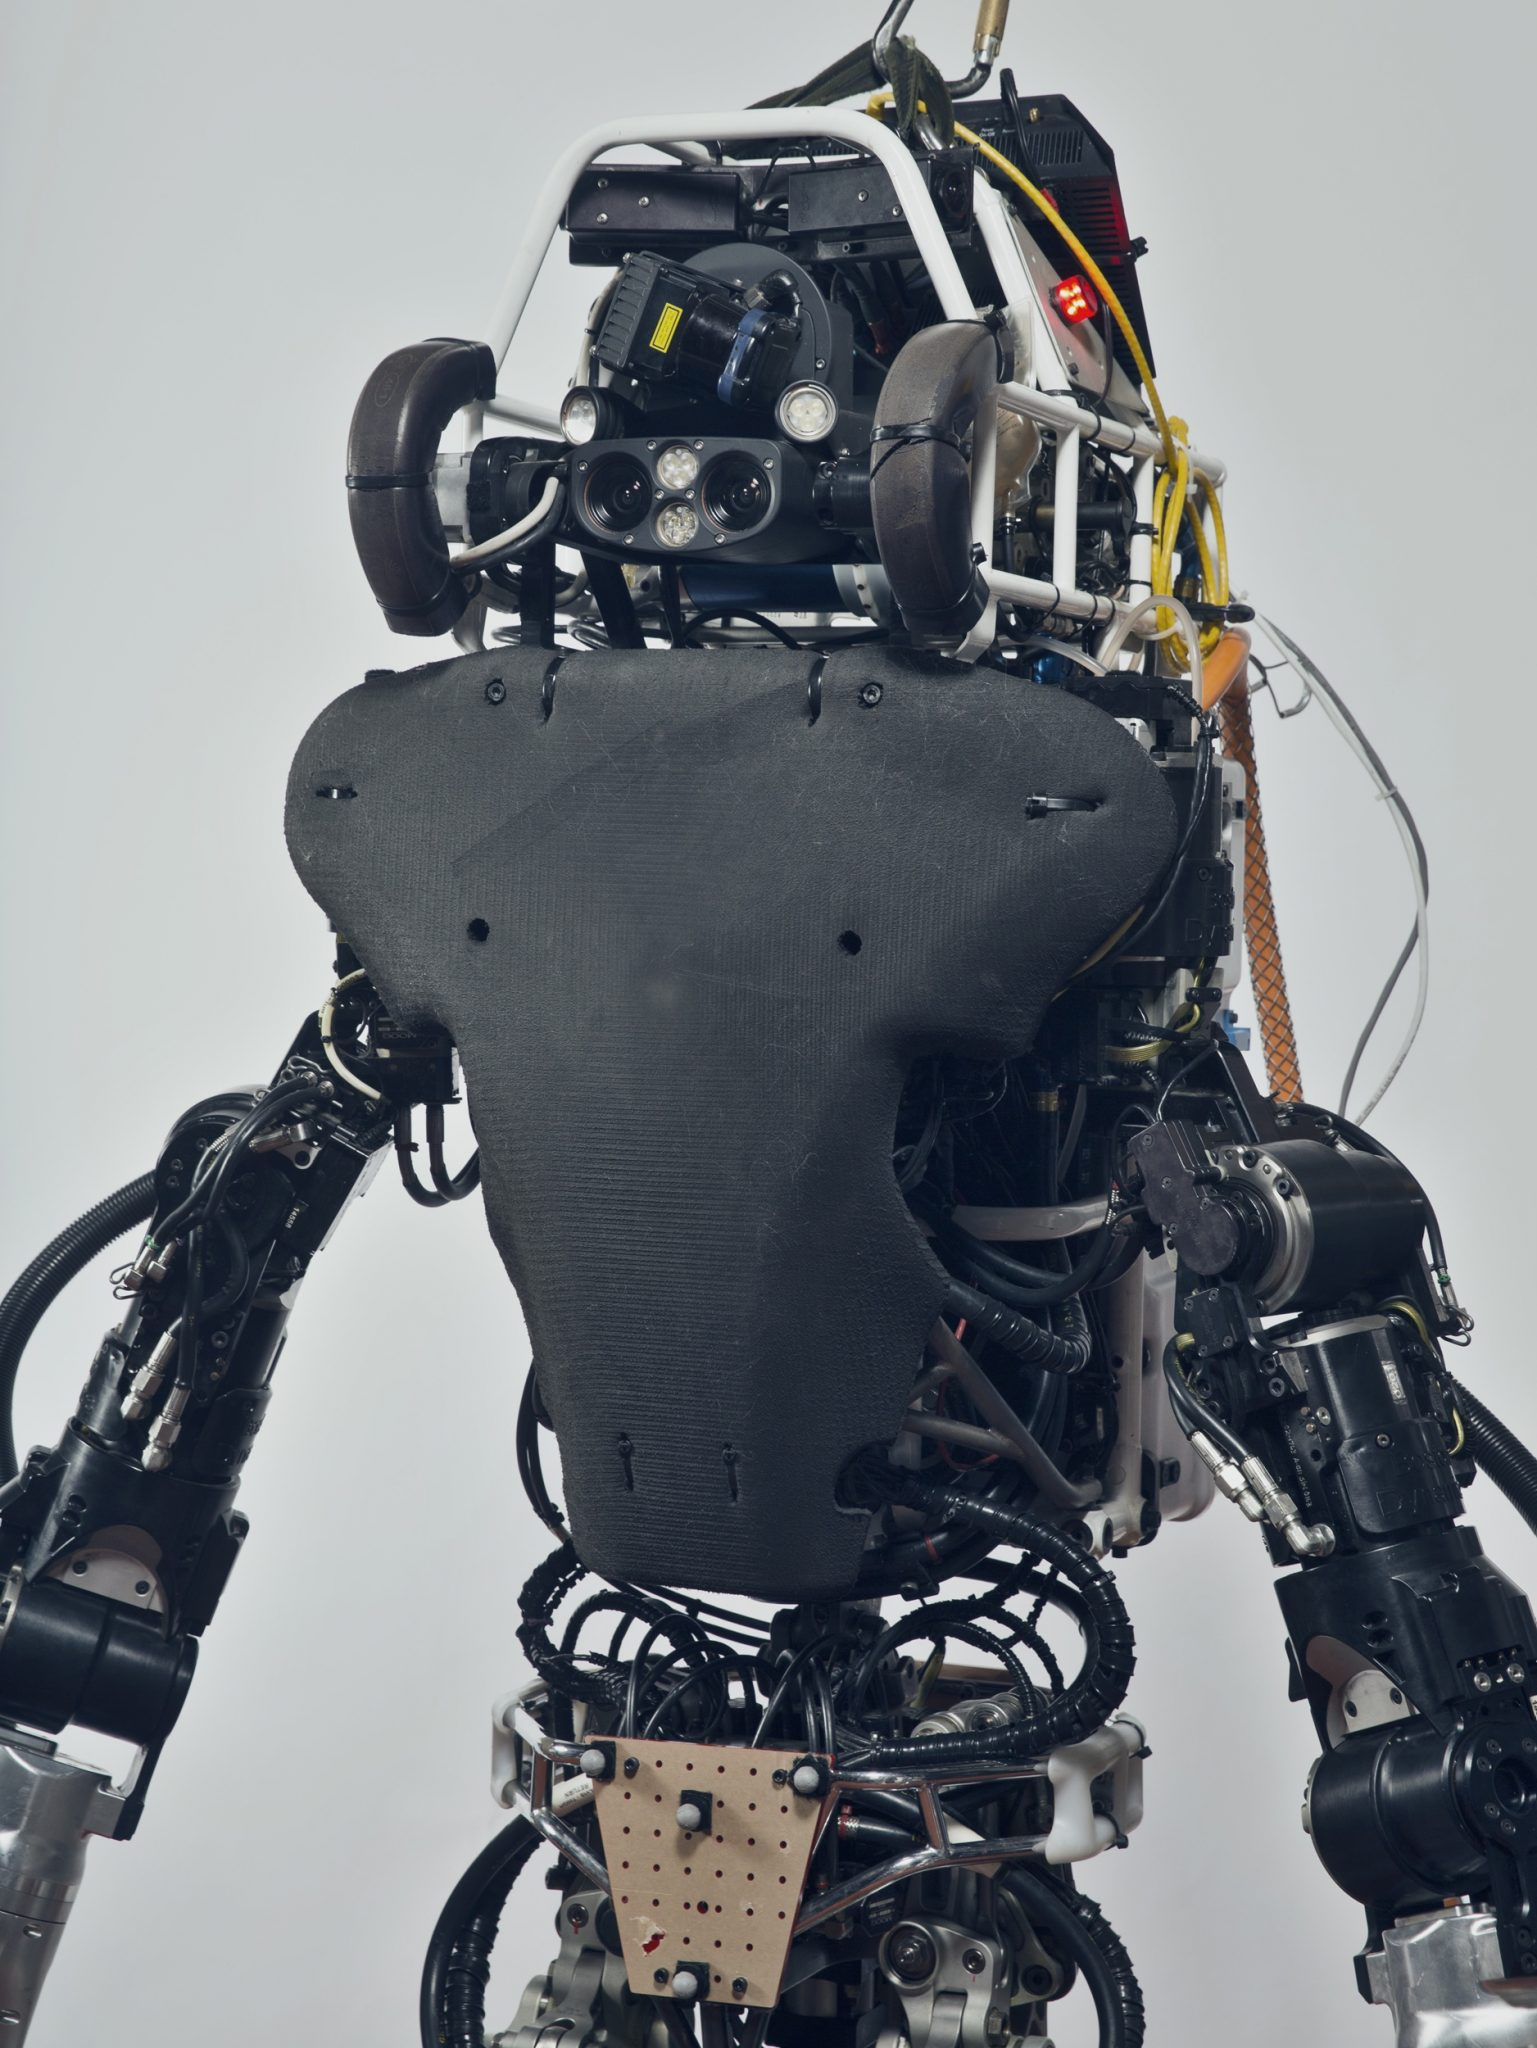 Atlas is a humanoid robot developed mainly by Boston Dynamics, with the financing and supervision of the DARPA (Advanced Research Projects Agency) of the United States. The 1.8 meter robot was designed for search and rescue activities and was presented to the public for the first time in 2013. Massachusetts Institute of Technology, Cambridge, USA, 2017